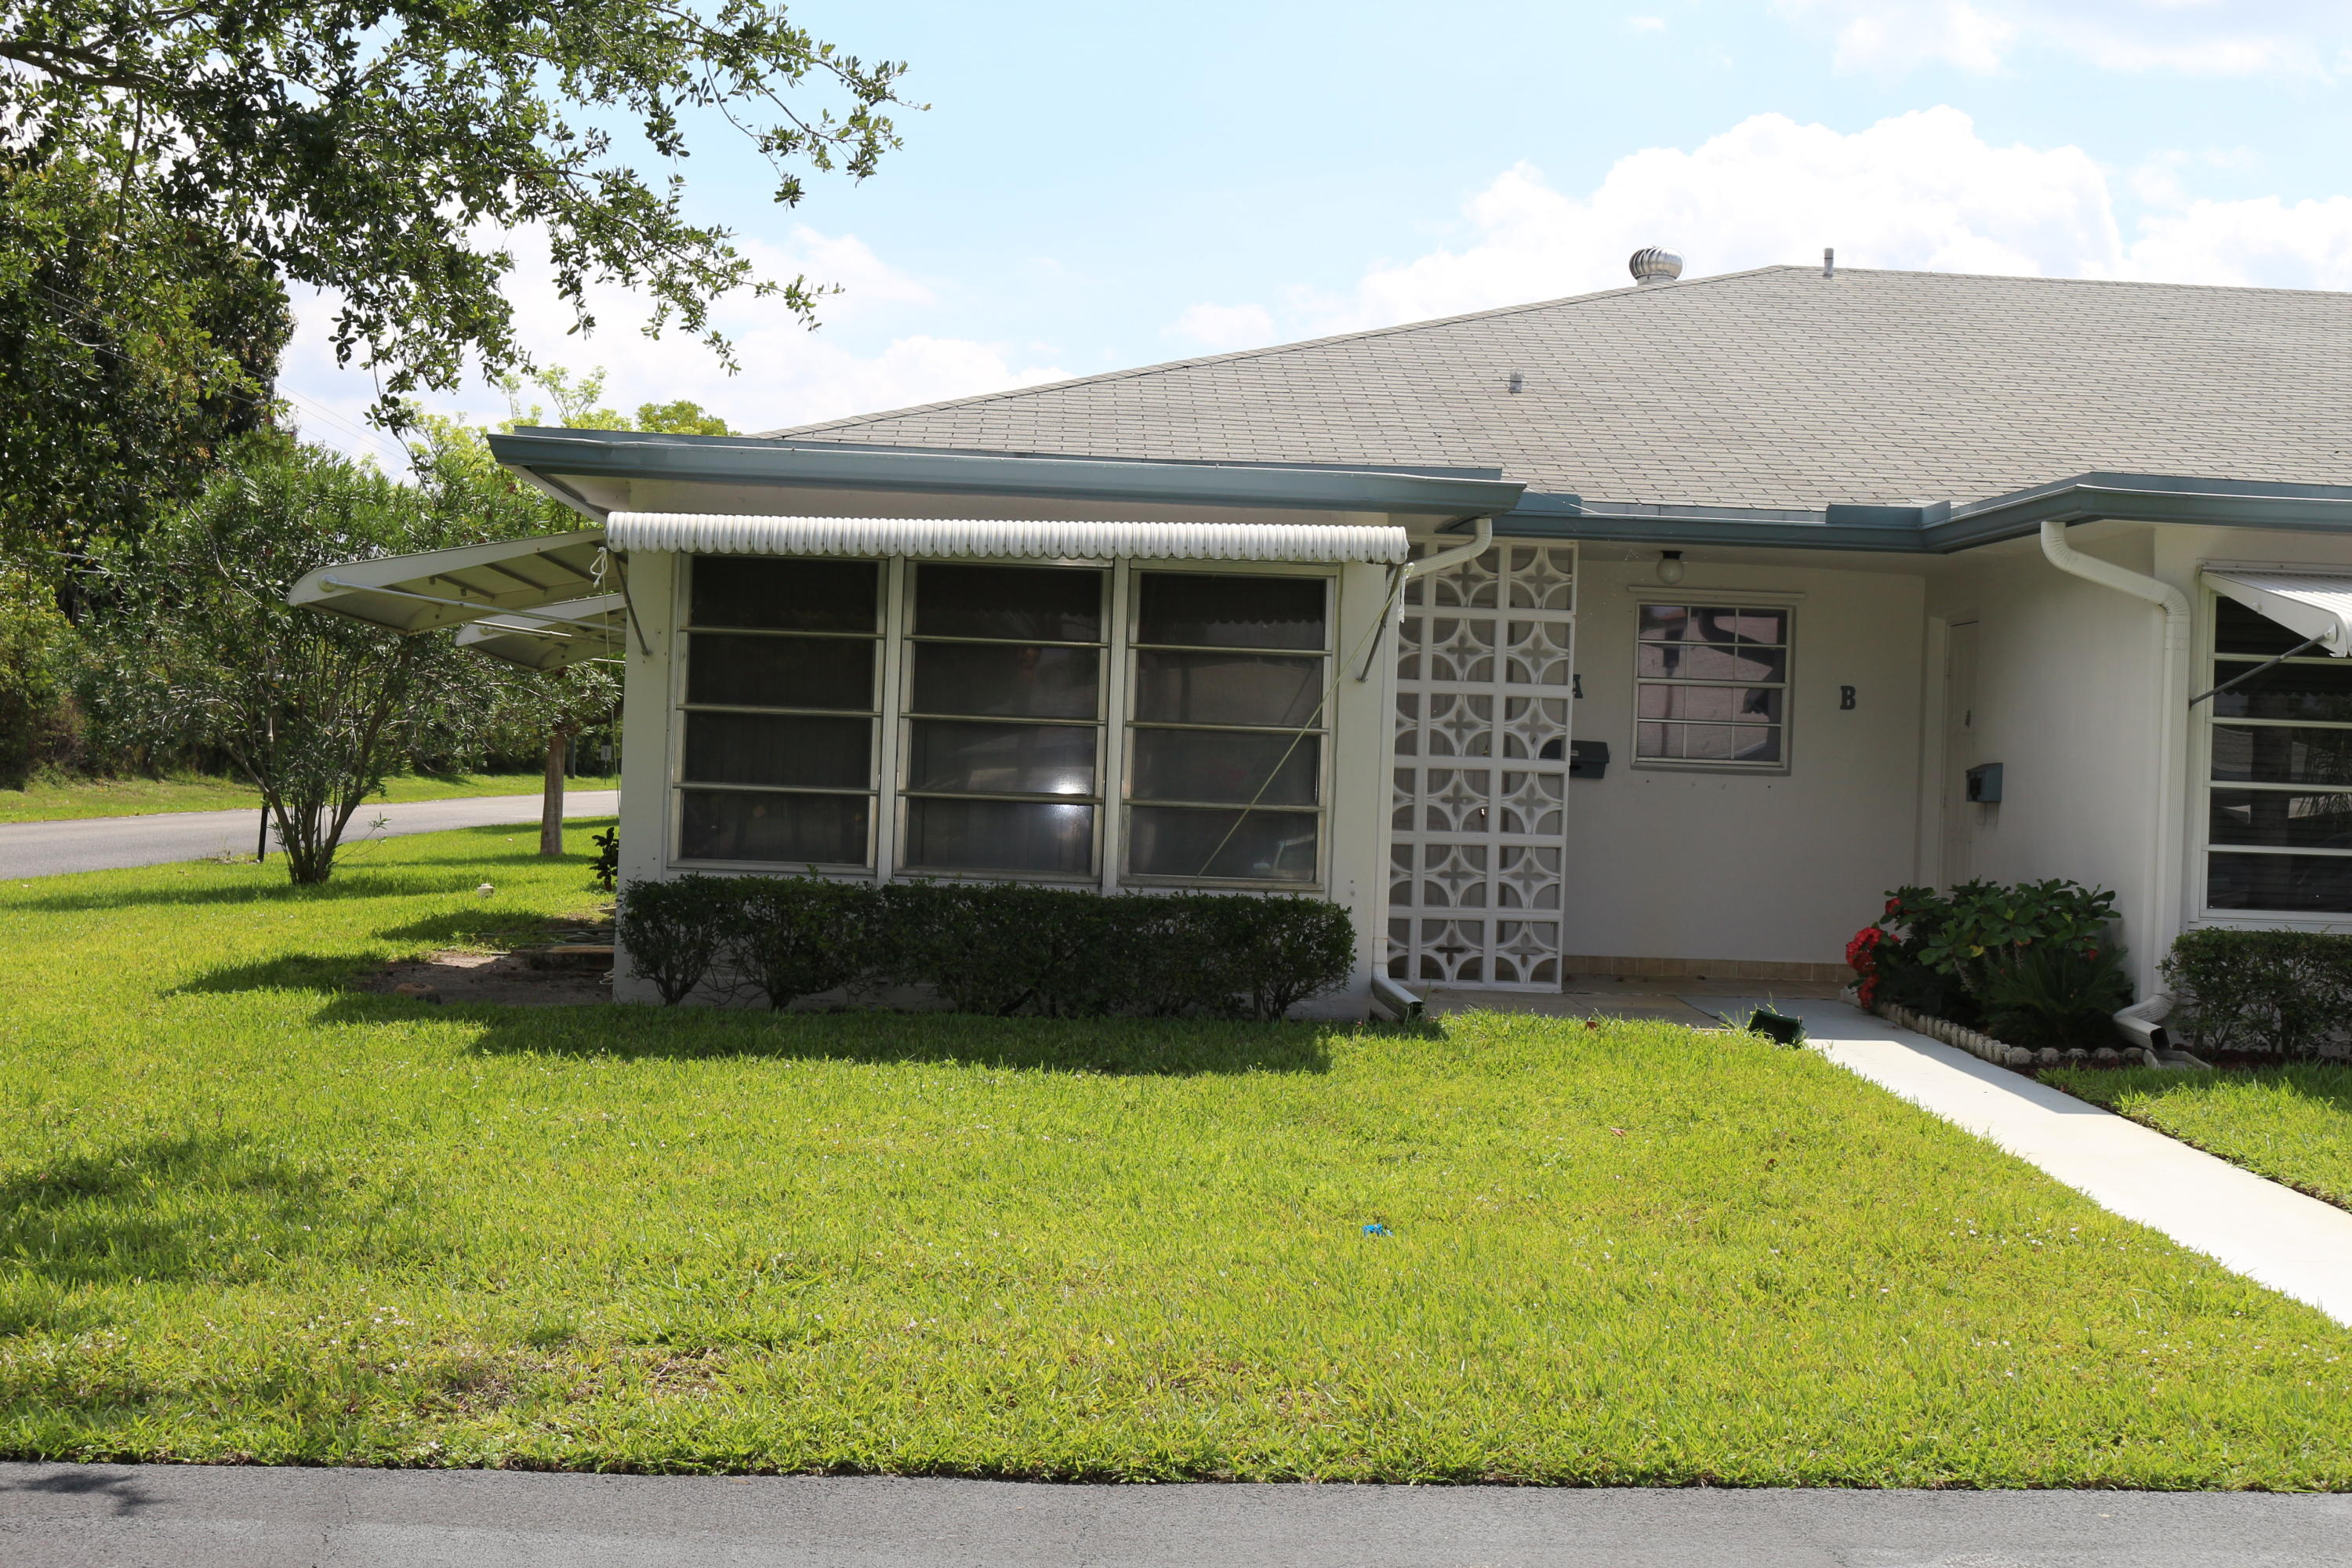 This 2 bedroom, 2 bath villa has tiled living areas, and master bedroom. Second bedroom carpeted.  Open paper deck.  Association enjoys Clubhouse, Tennis Courts and Shuffle Board Courts.  Approximately 3.5 miles from trendy downtown Delray Beach and 4 miles from the Atlantic Ocean shoreline with an approximate 2 mile stretch of white sand beach.